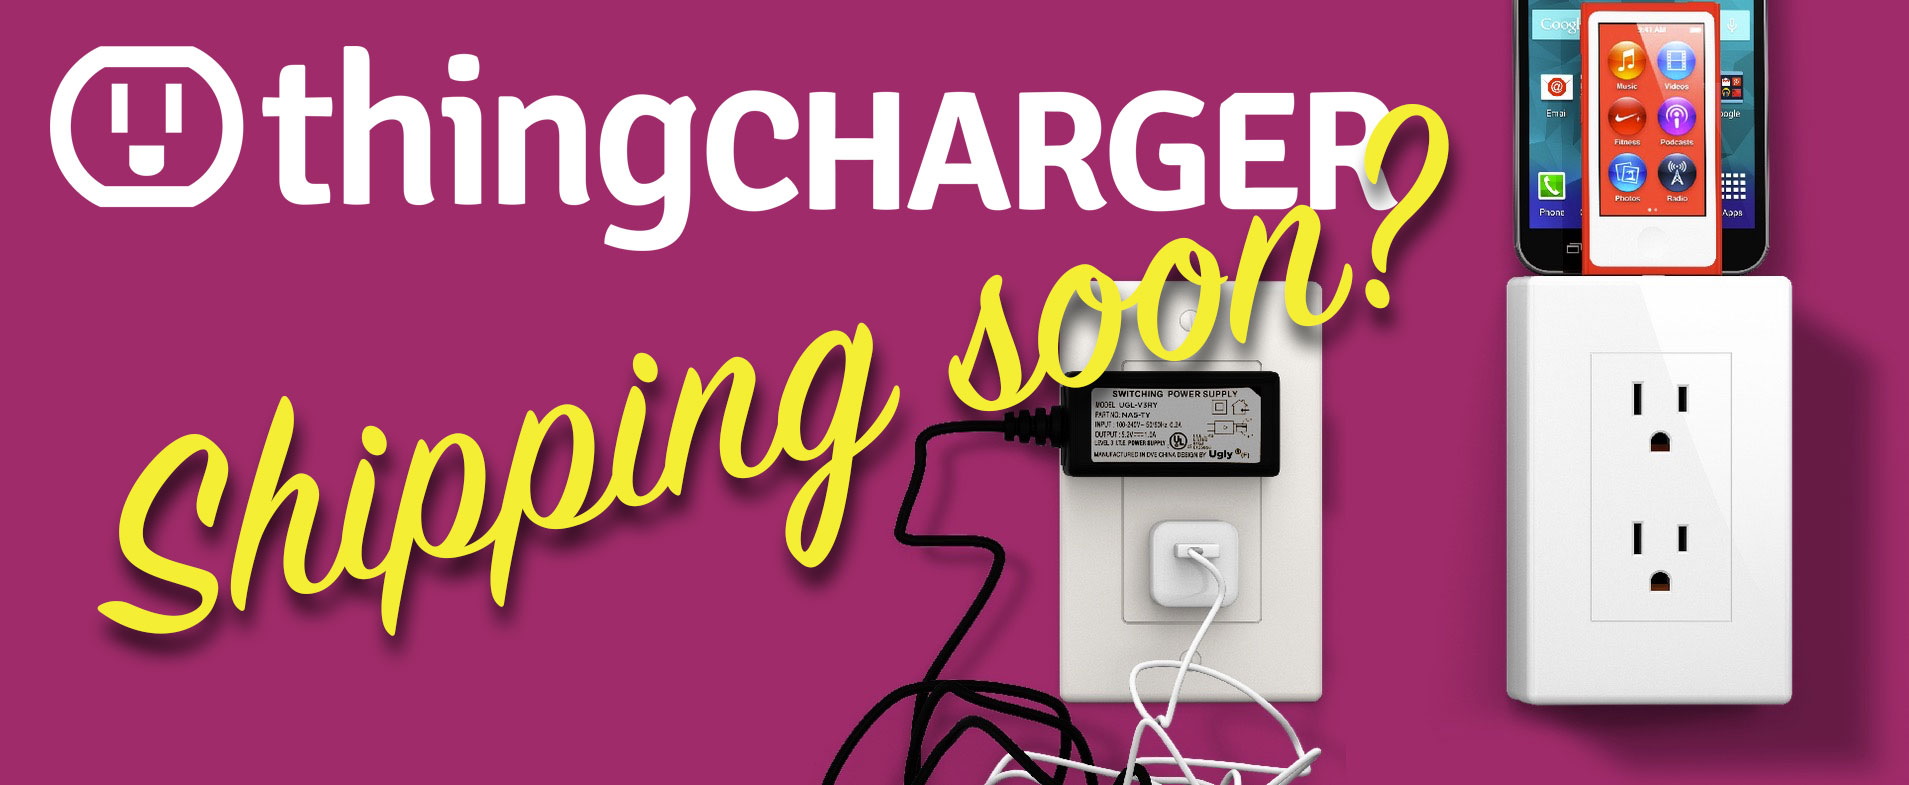 thingcharger-shipping-soon